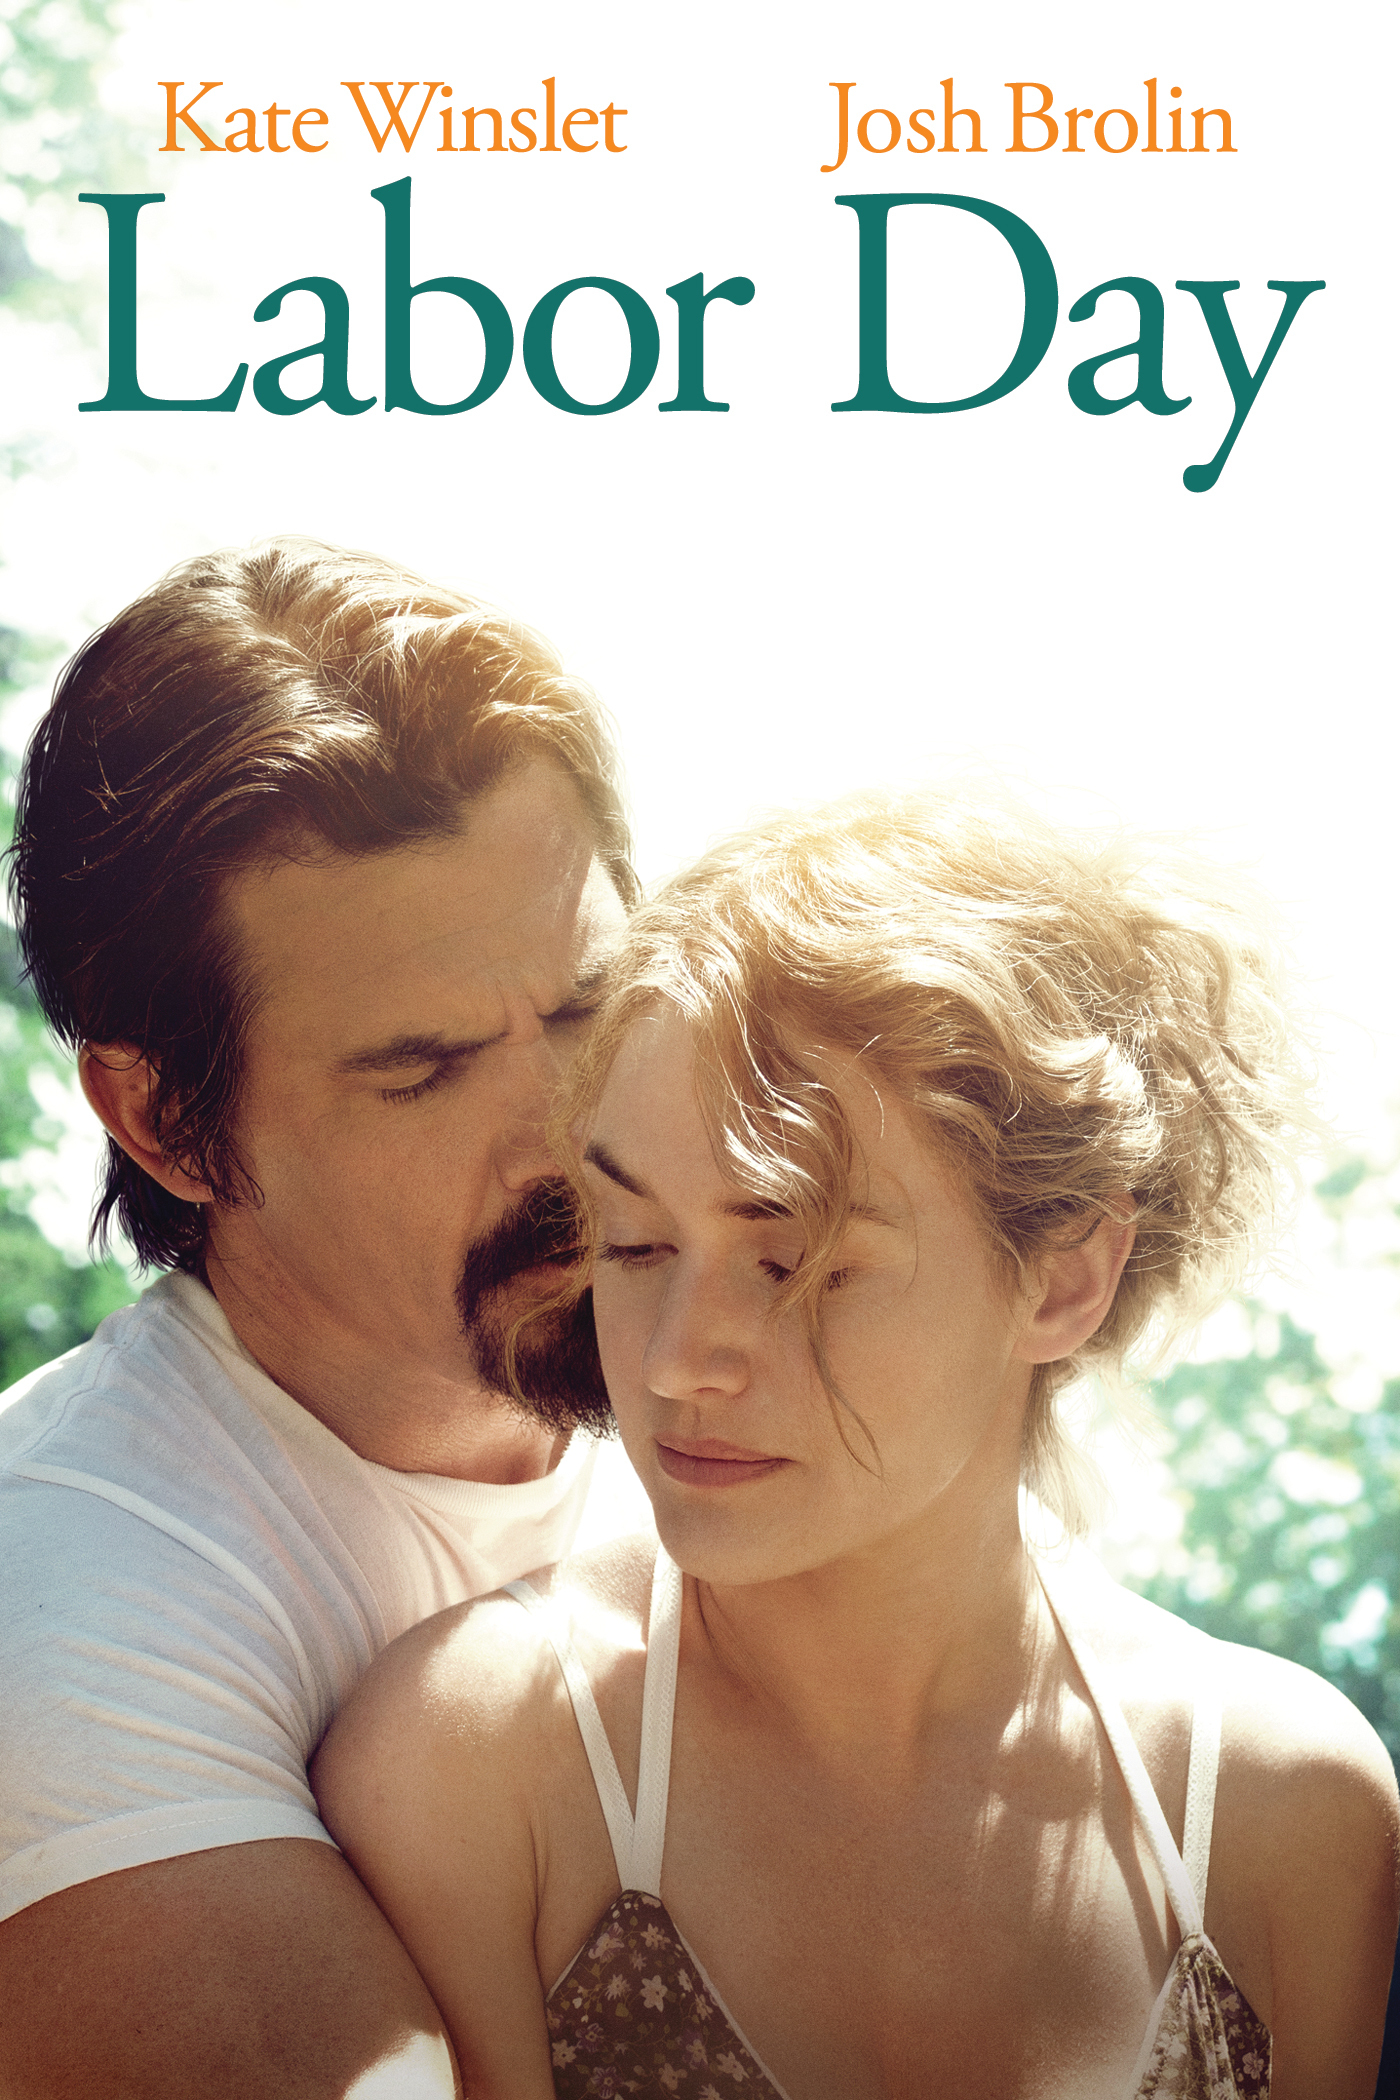 What date is labor day